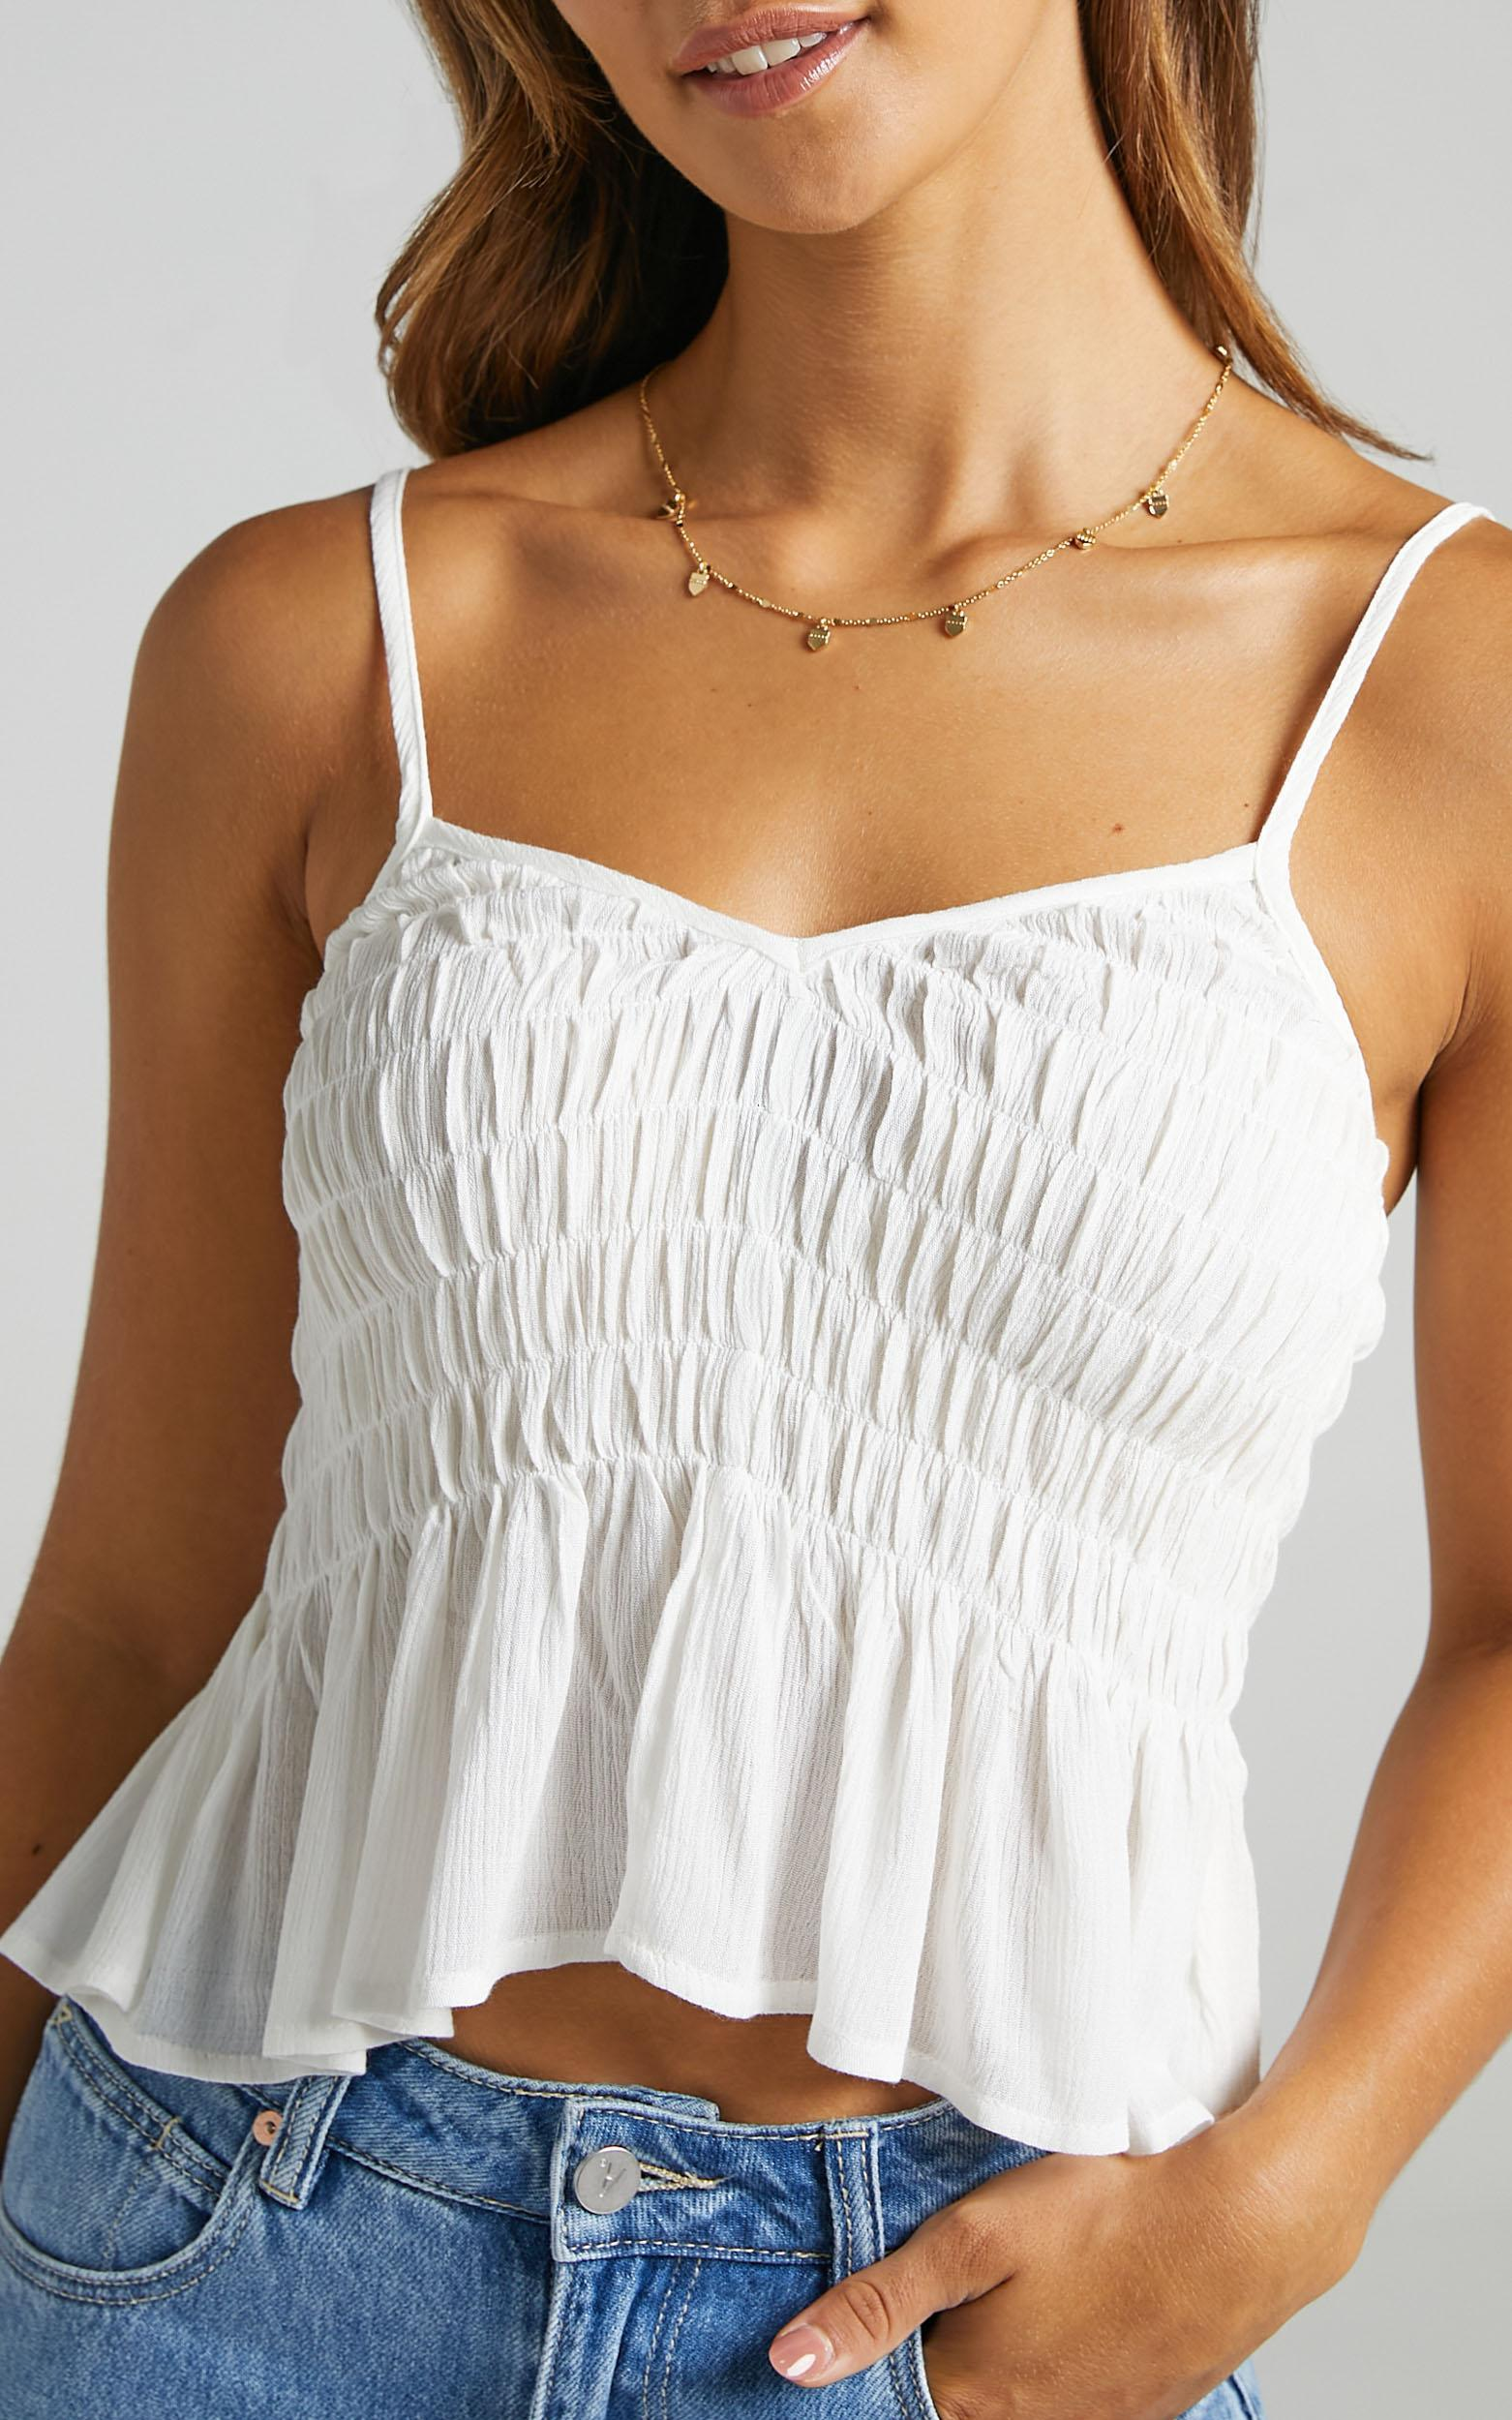 Bellona Top in White - 6 (XS), White, hi-res image number null